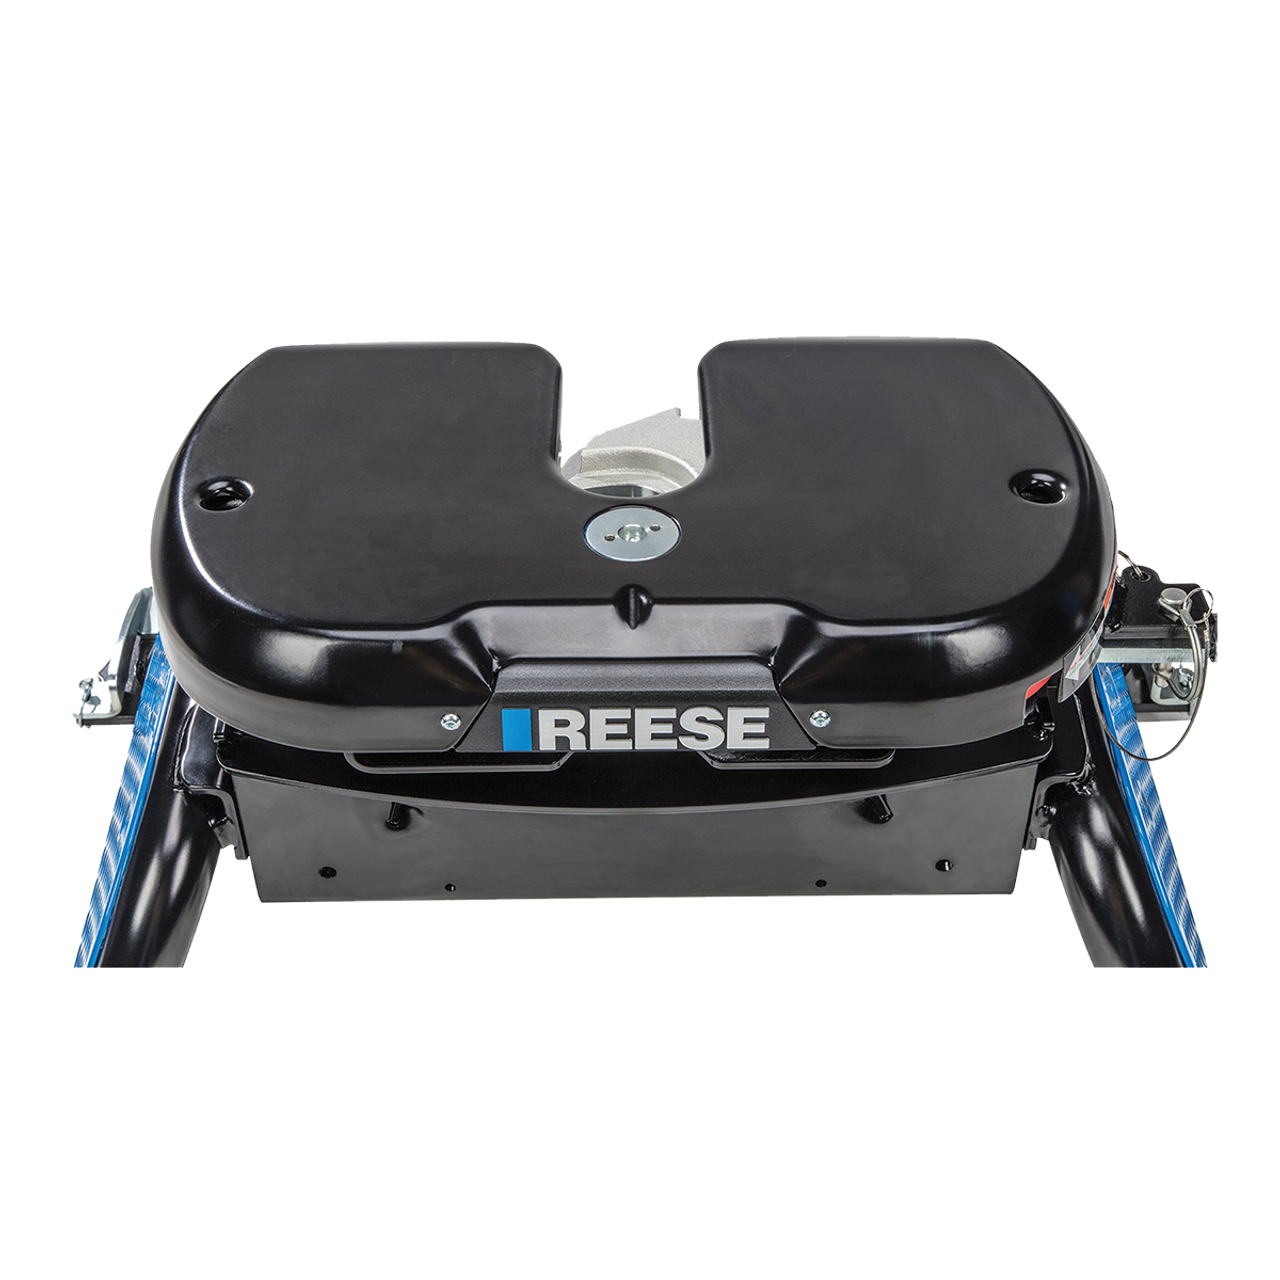 30922 --- Reese™ M5 27K Fifth Wheel Hitch for Ford trucks with OEM puck system